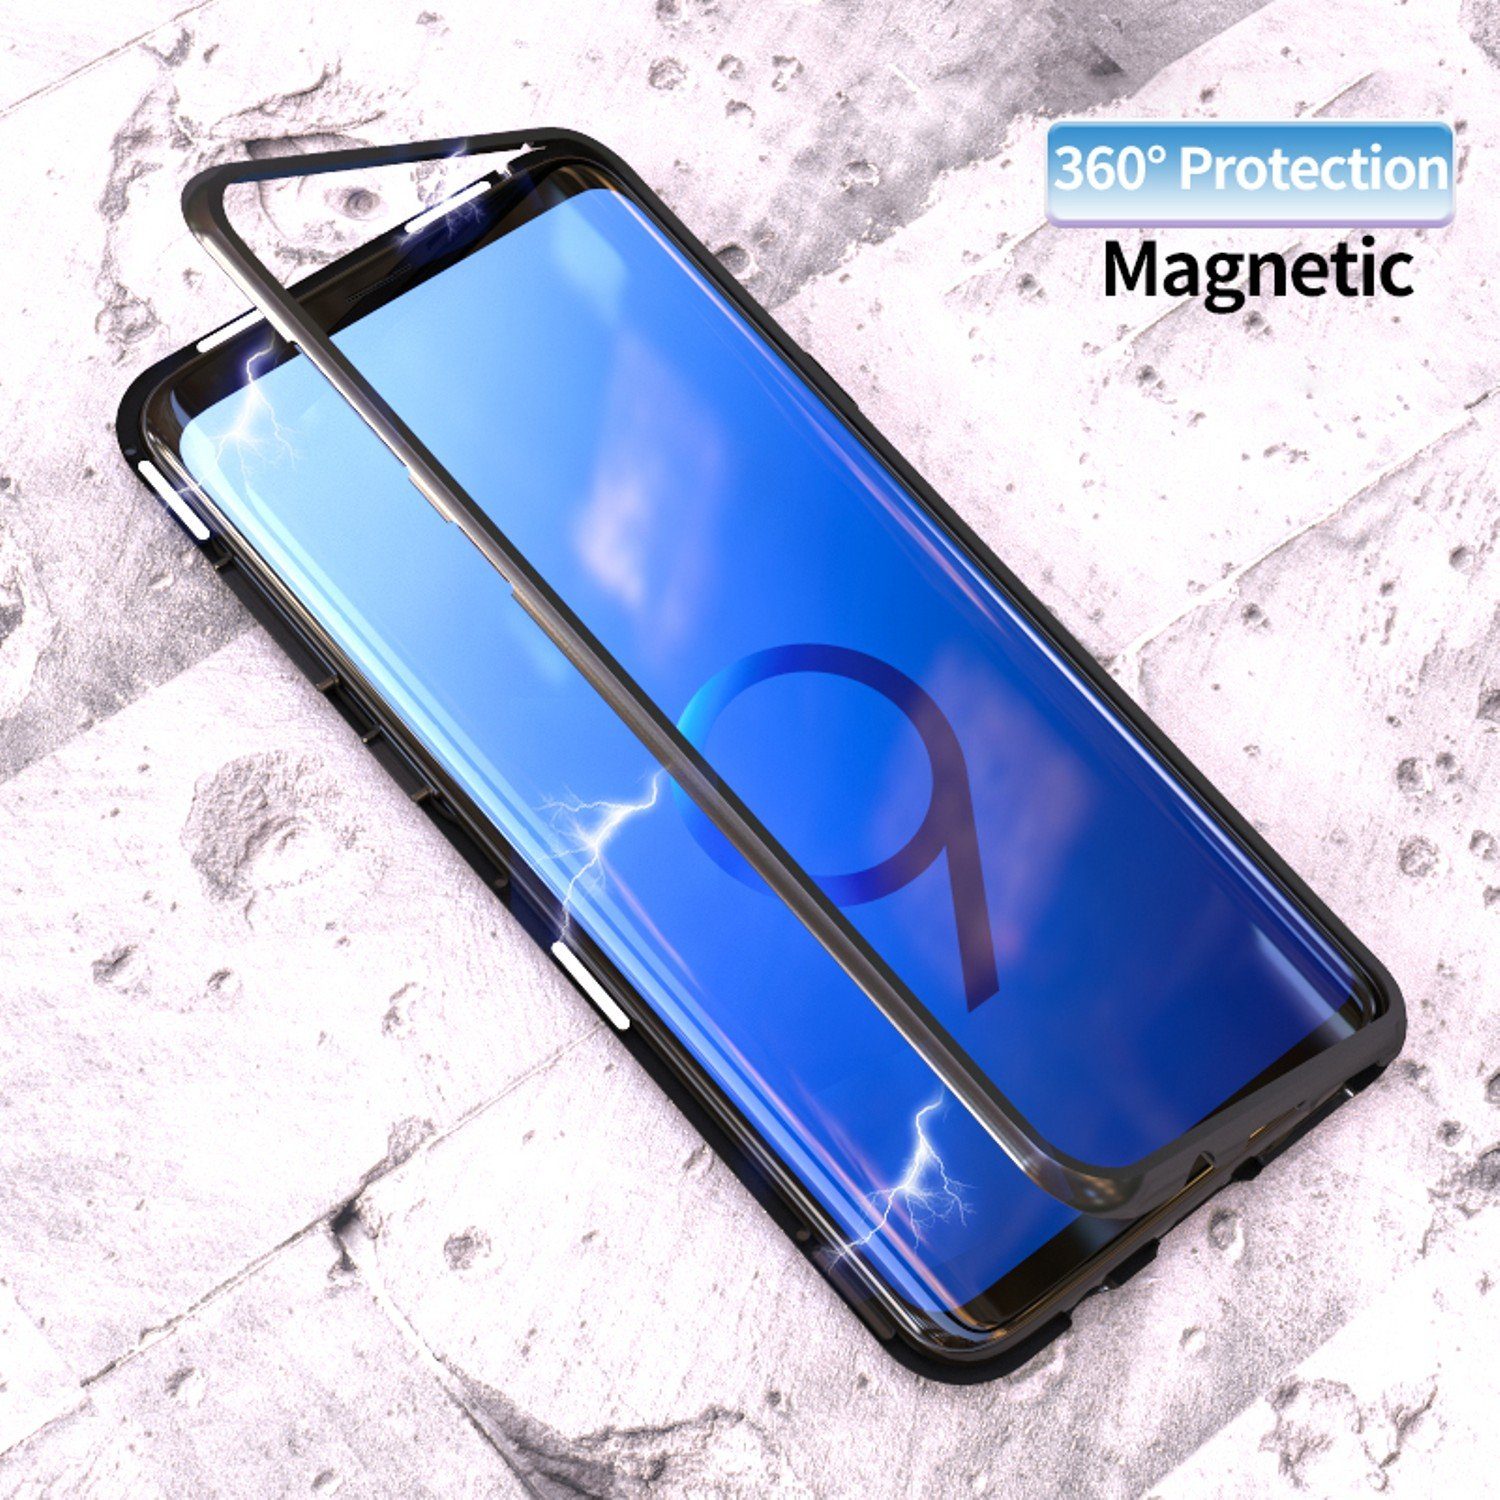 sale retailer 0feb3 081fd Magnetic Adsorption Flip Case for Samsung Galaxy S8 S9 Plus Tempered Glass  Back Cover Luxury Metal Bumpers Hard Case (Clear Black, Samsung S8 Plus)